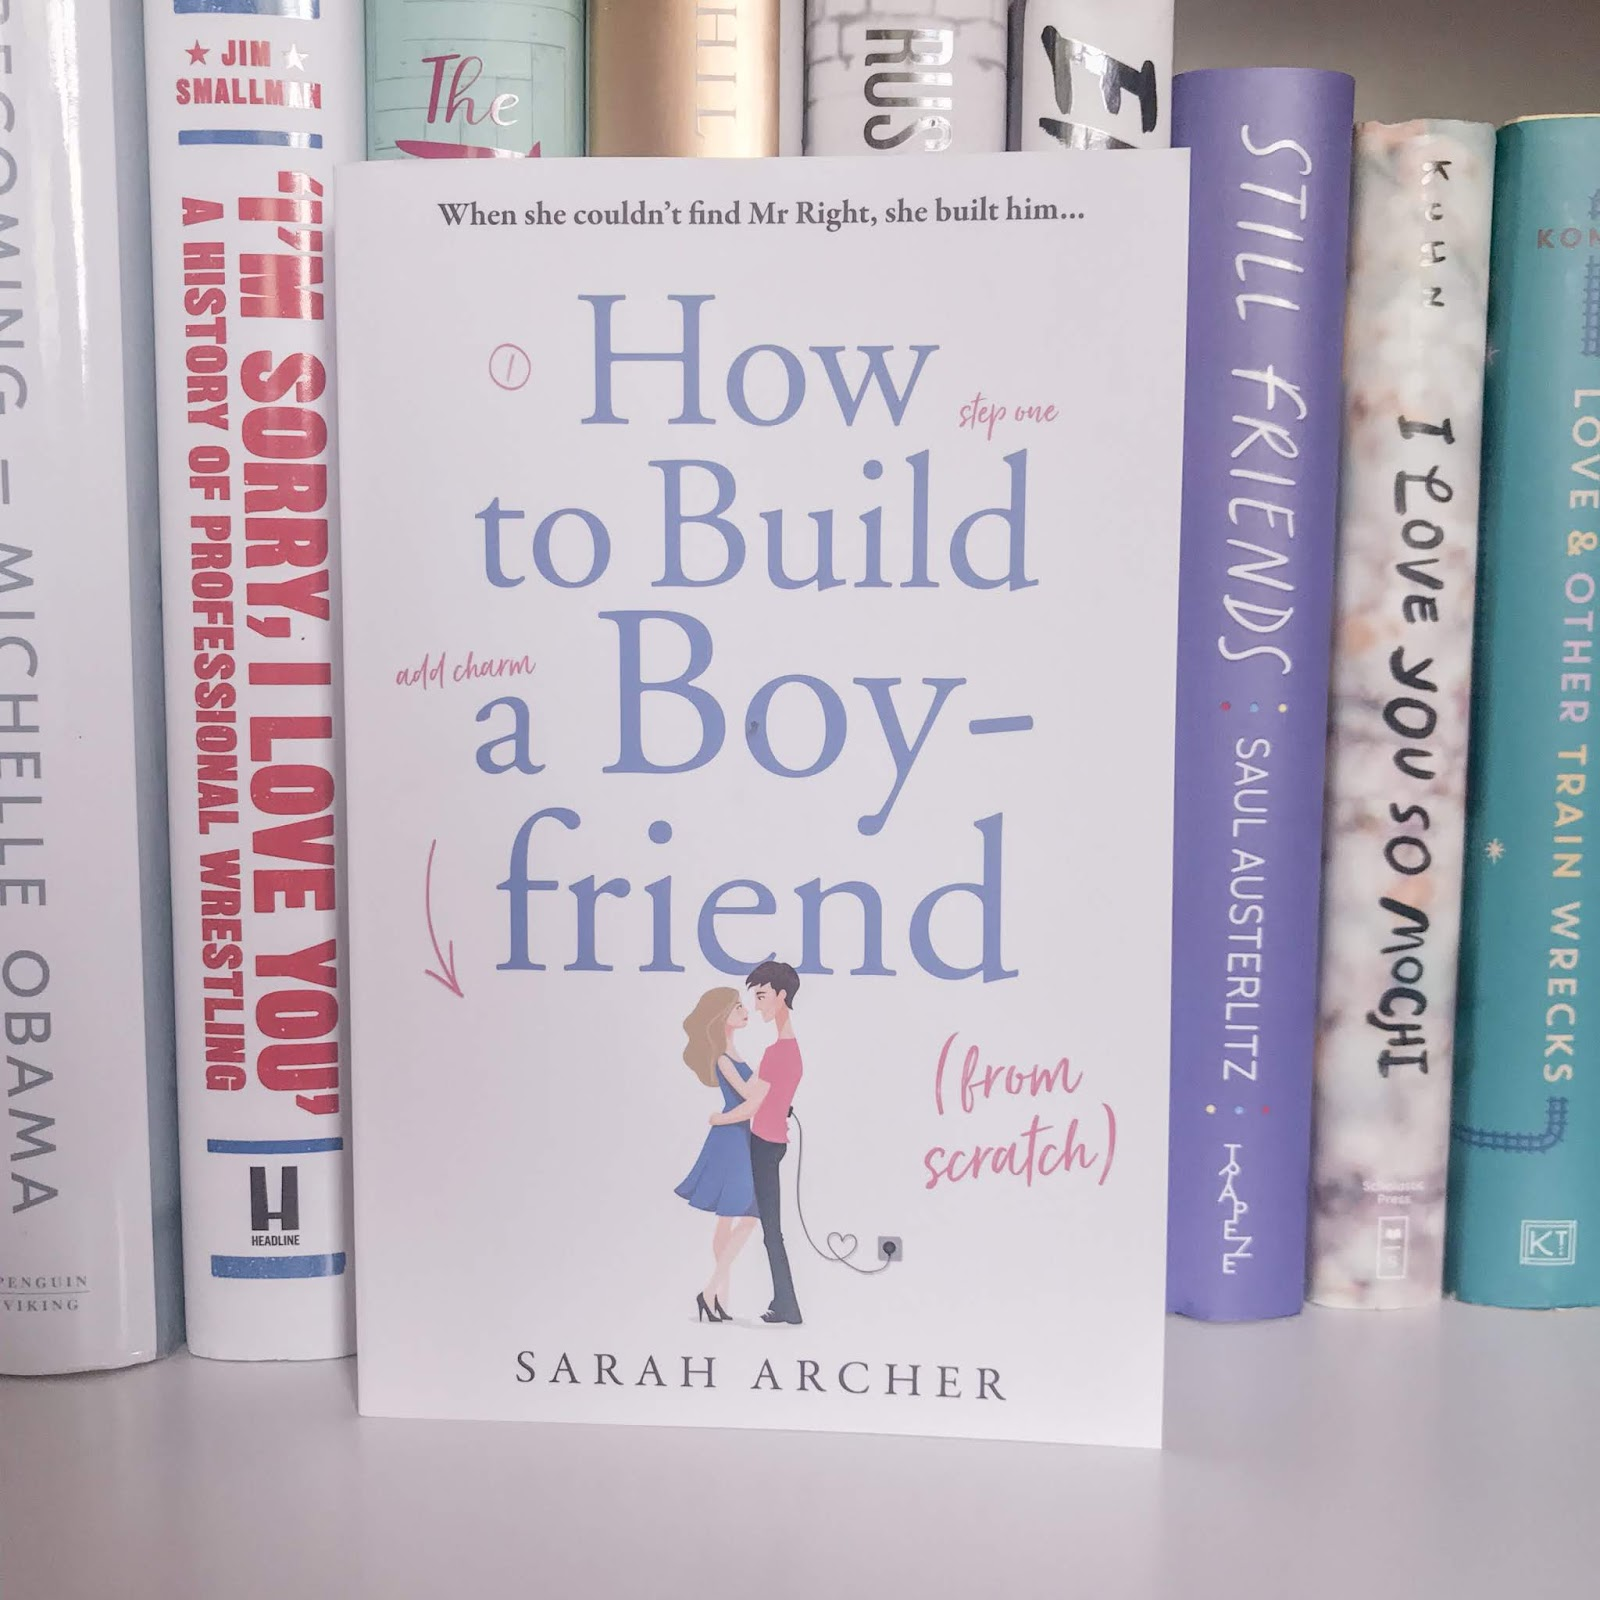 How to Build a Boyfriend (From Scratch) - Sarah Archer